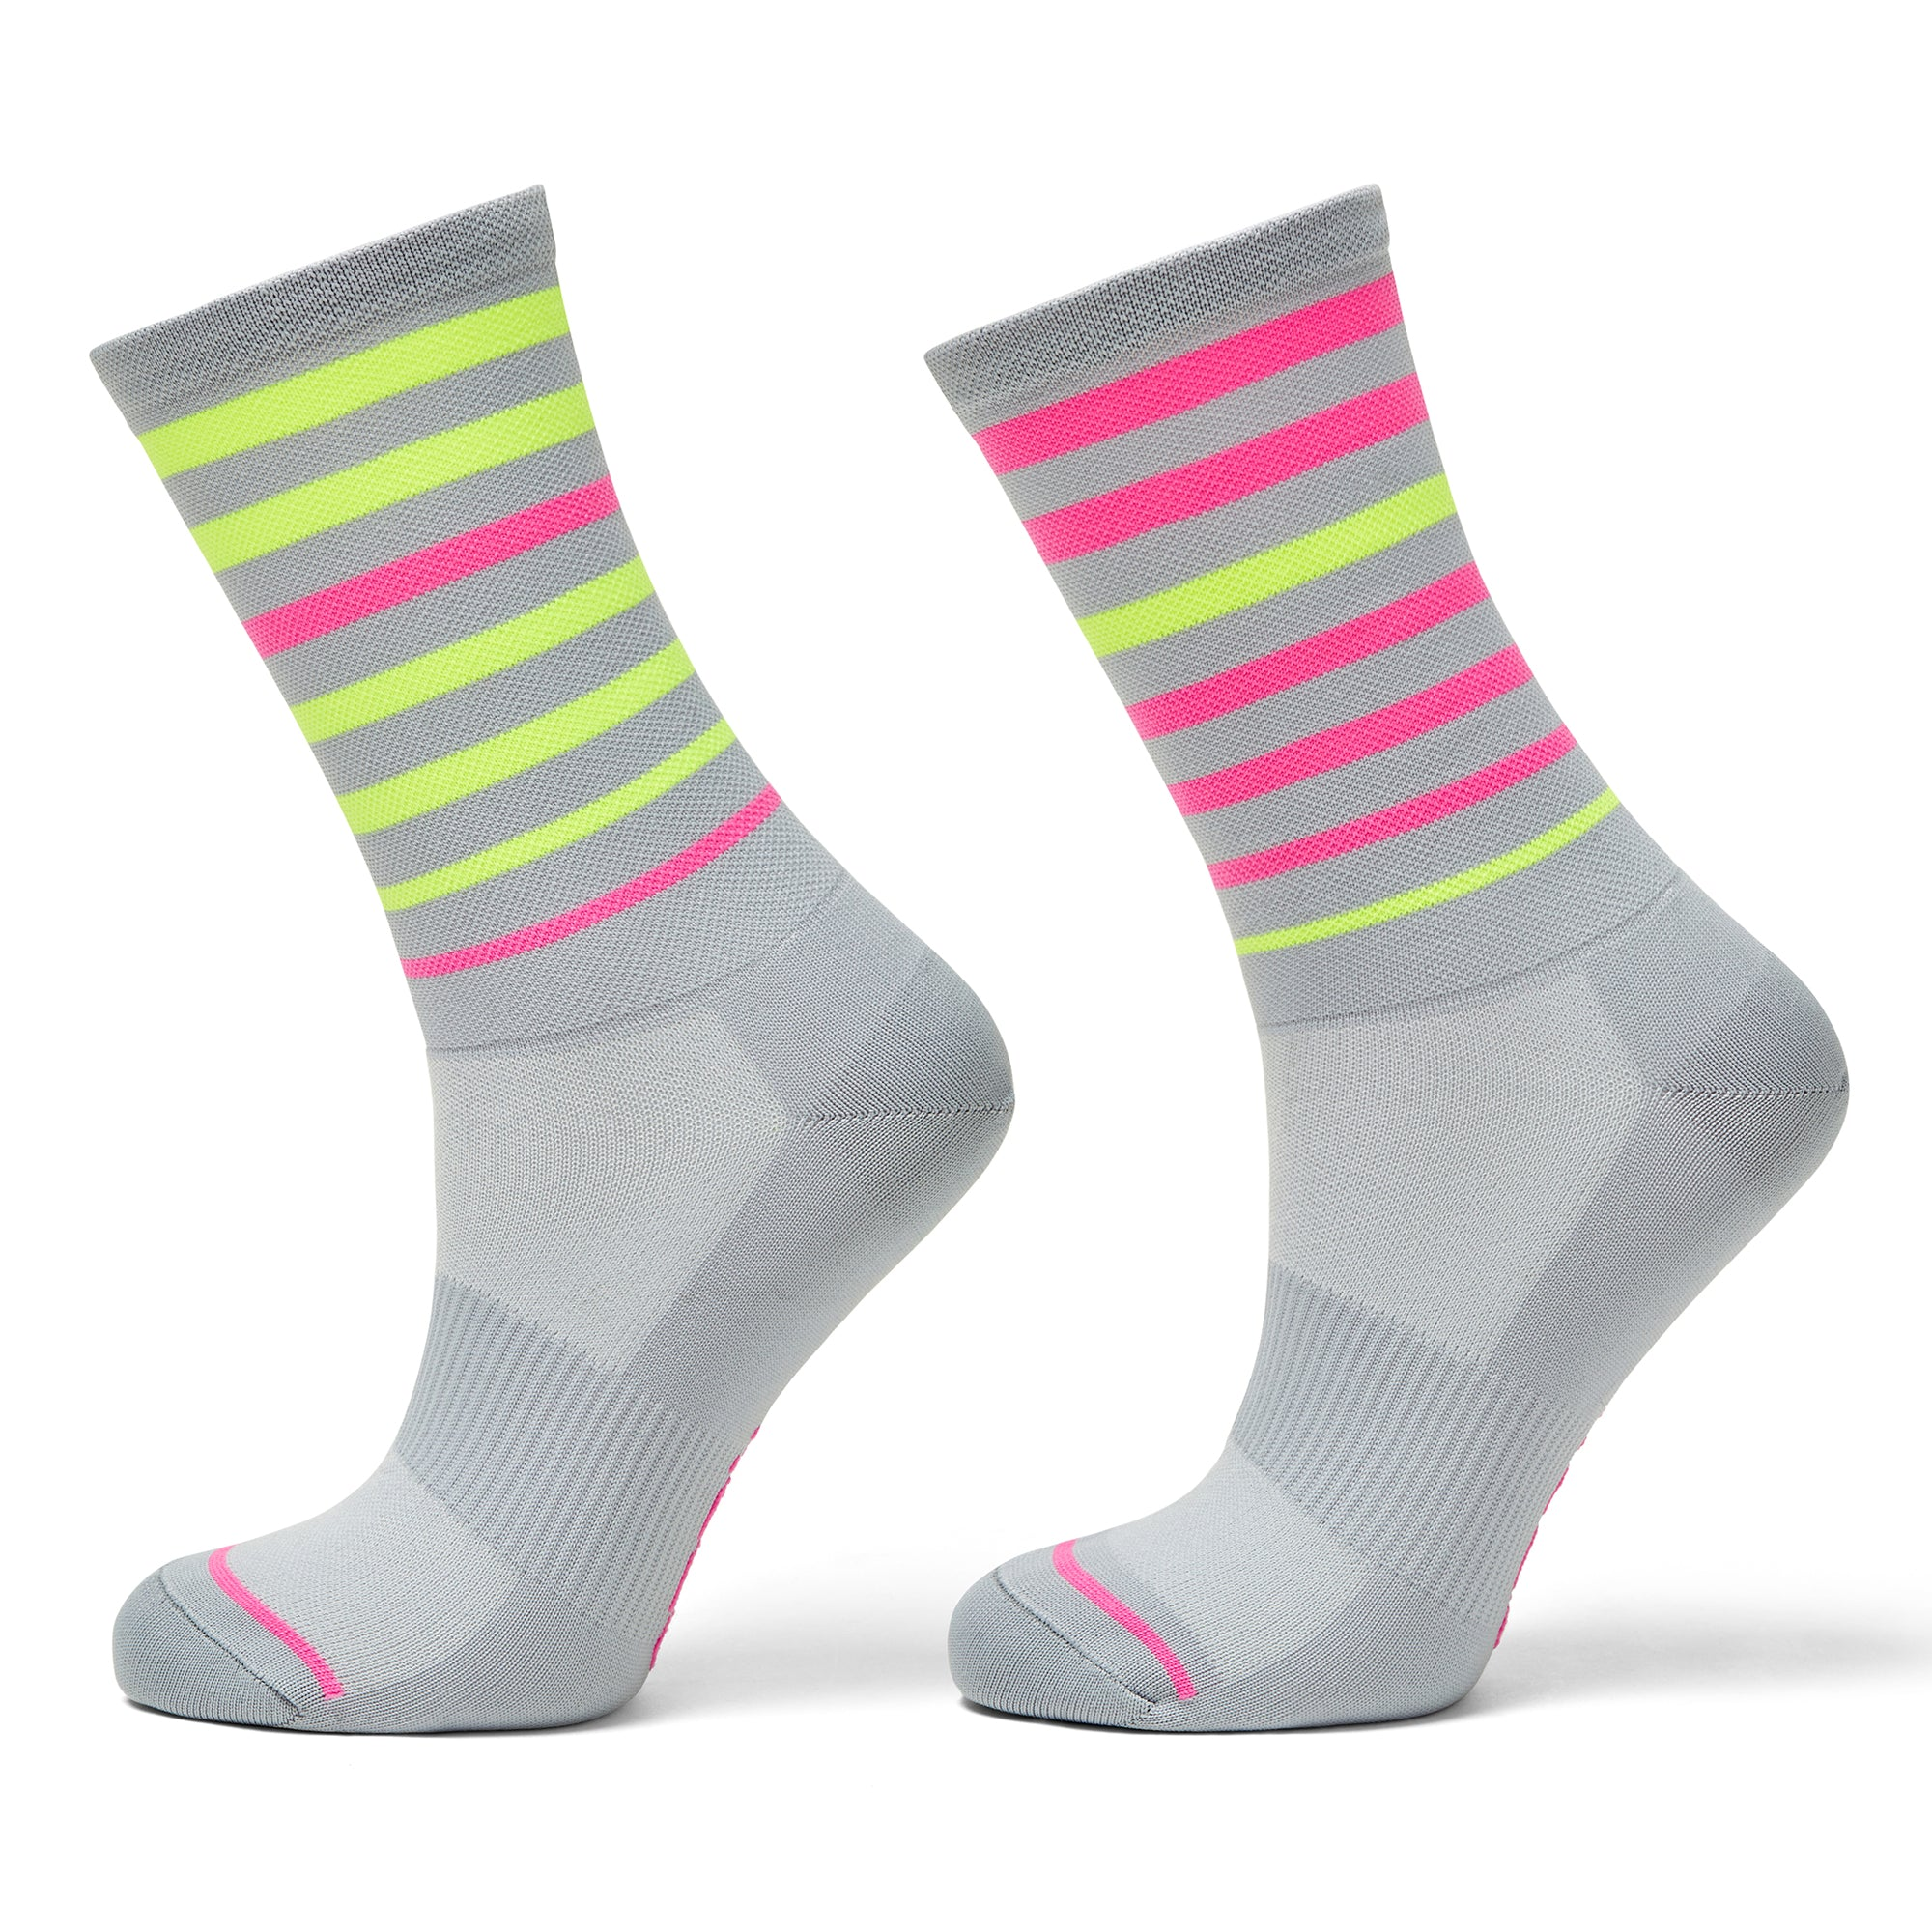 Cycling Socks - Breton stripes grey